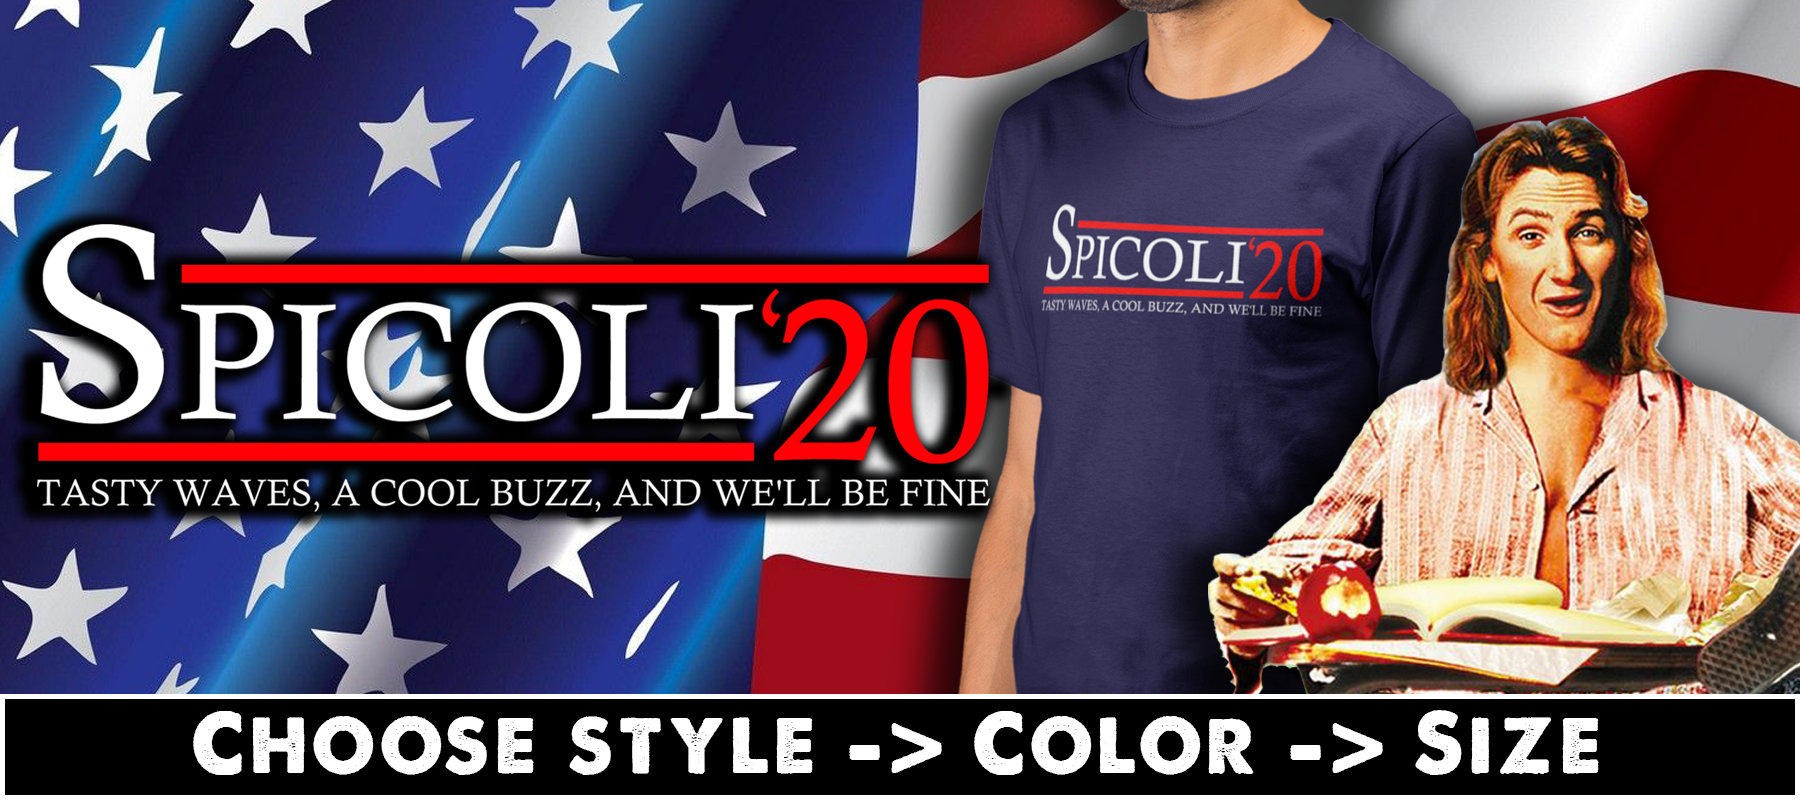 Spicoli 20 T-shirts, Hoodies & Mugs